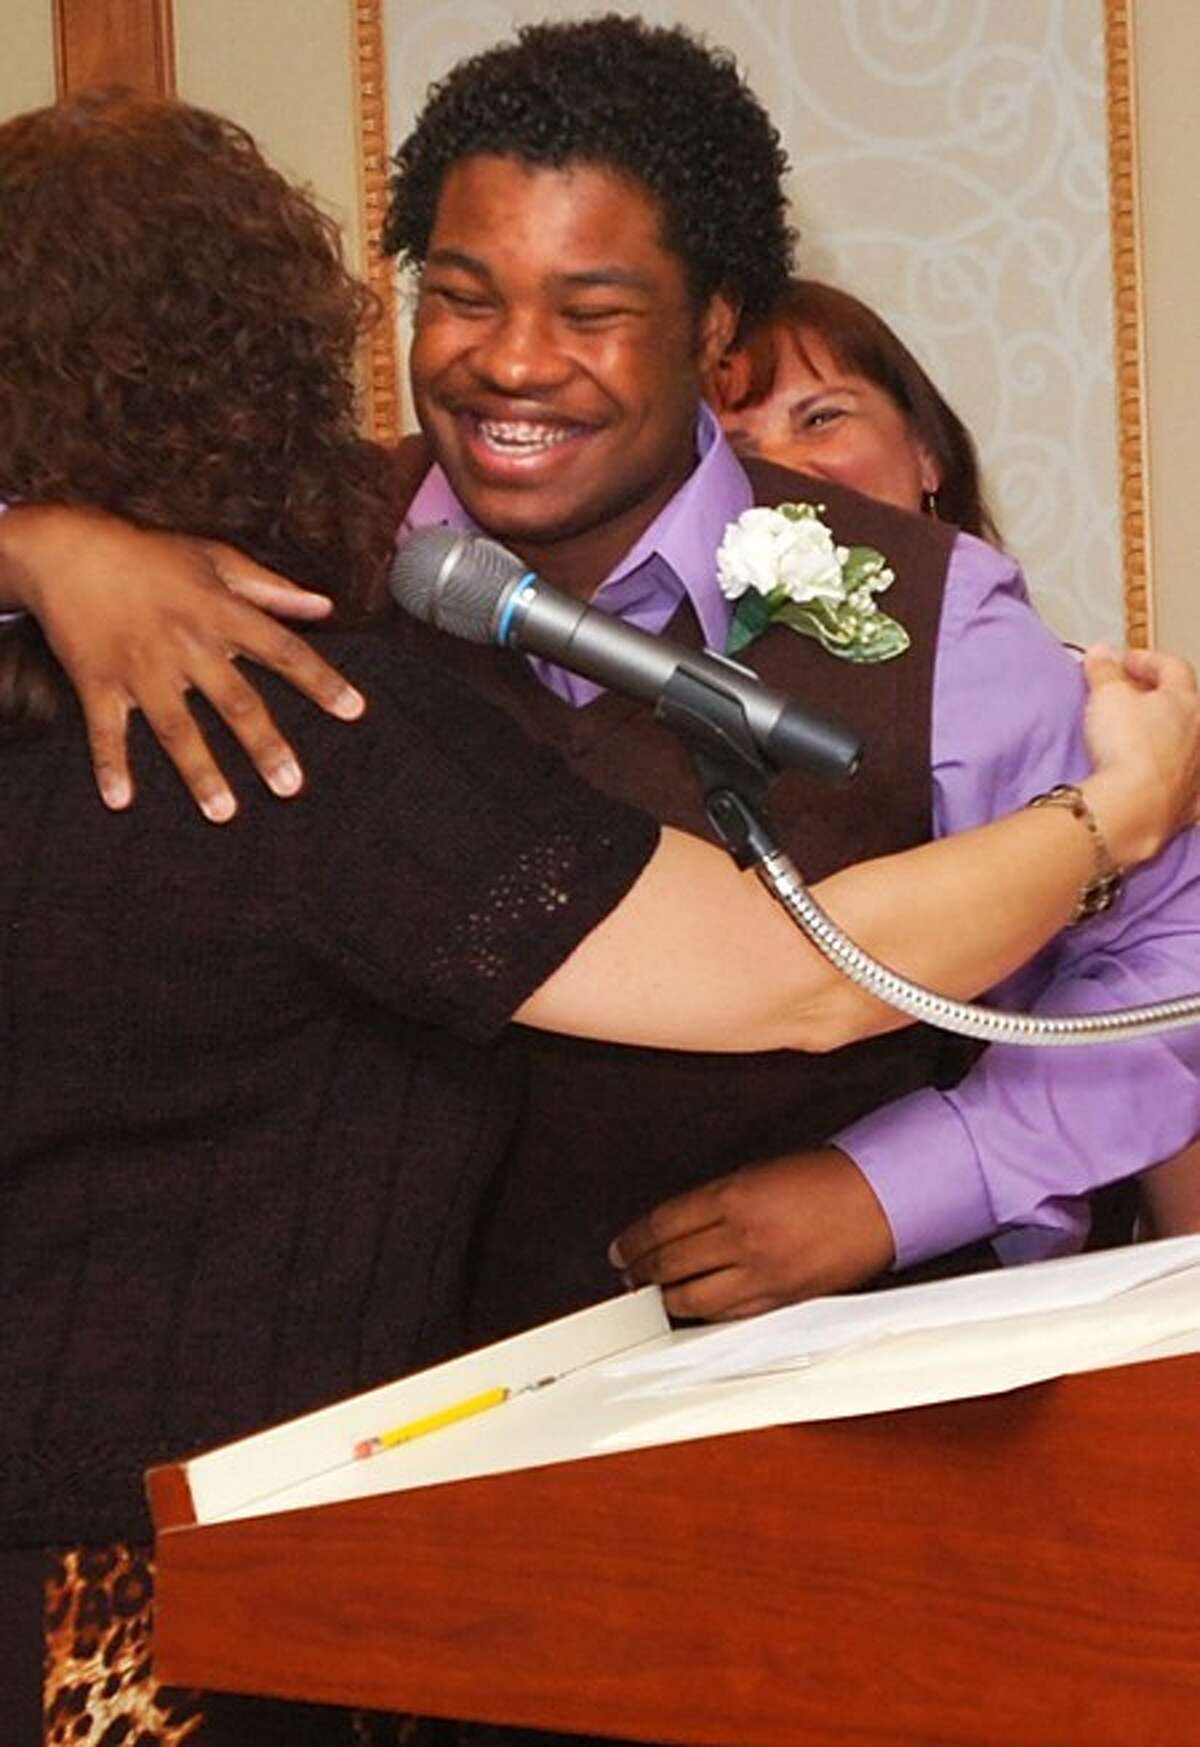 School to Career graduate Travis White receives congratulations from Denise Evon and Lisa Riieccio of the Norwalk Public Schools during the Graduation and Mentor Appreciation reception at the Norwalk Inn Thursday evening. Hour photo / Erik Trautmann